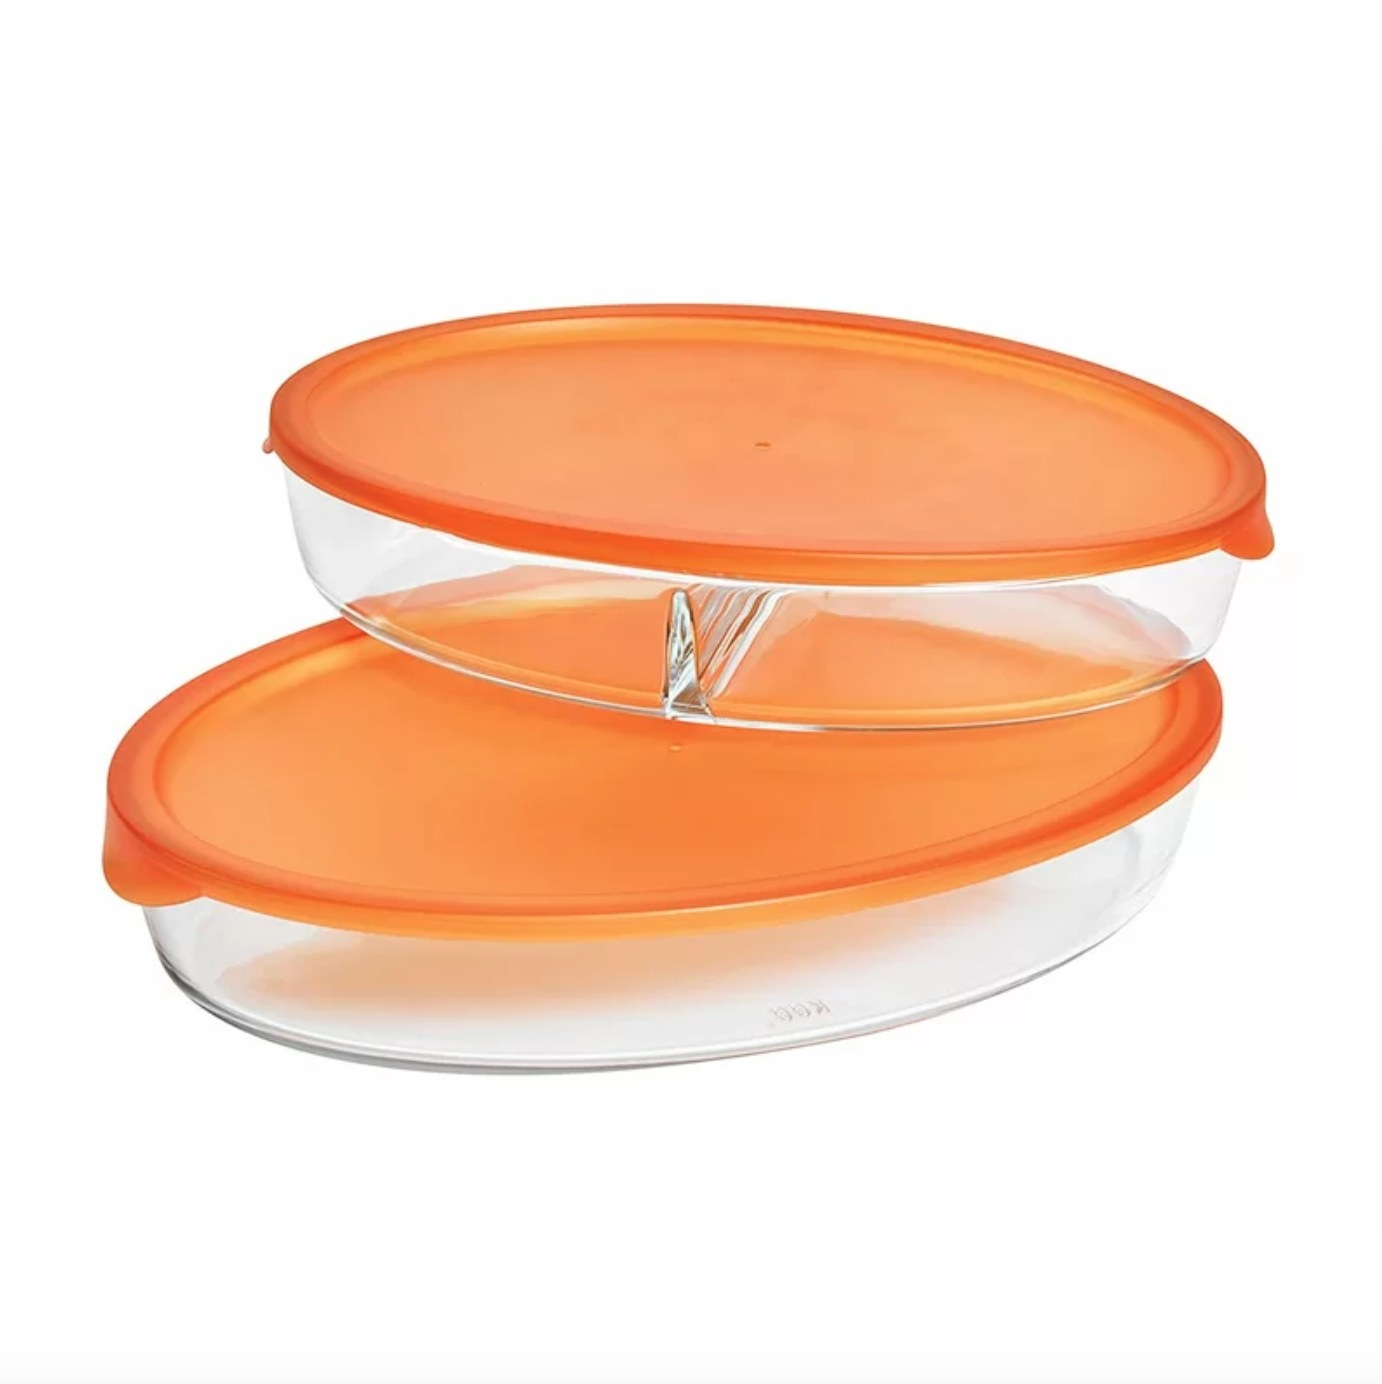 The two-piece bakeware set with orange lids